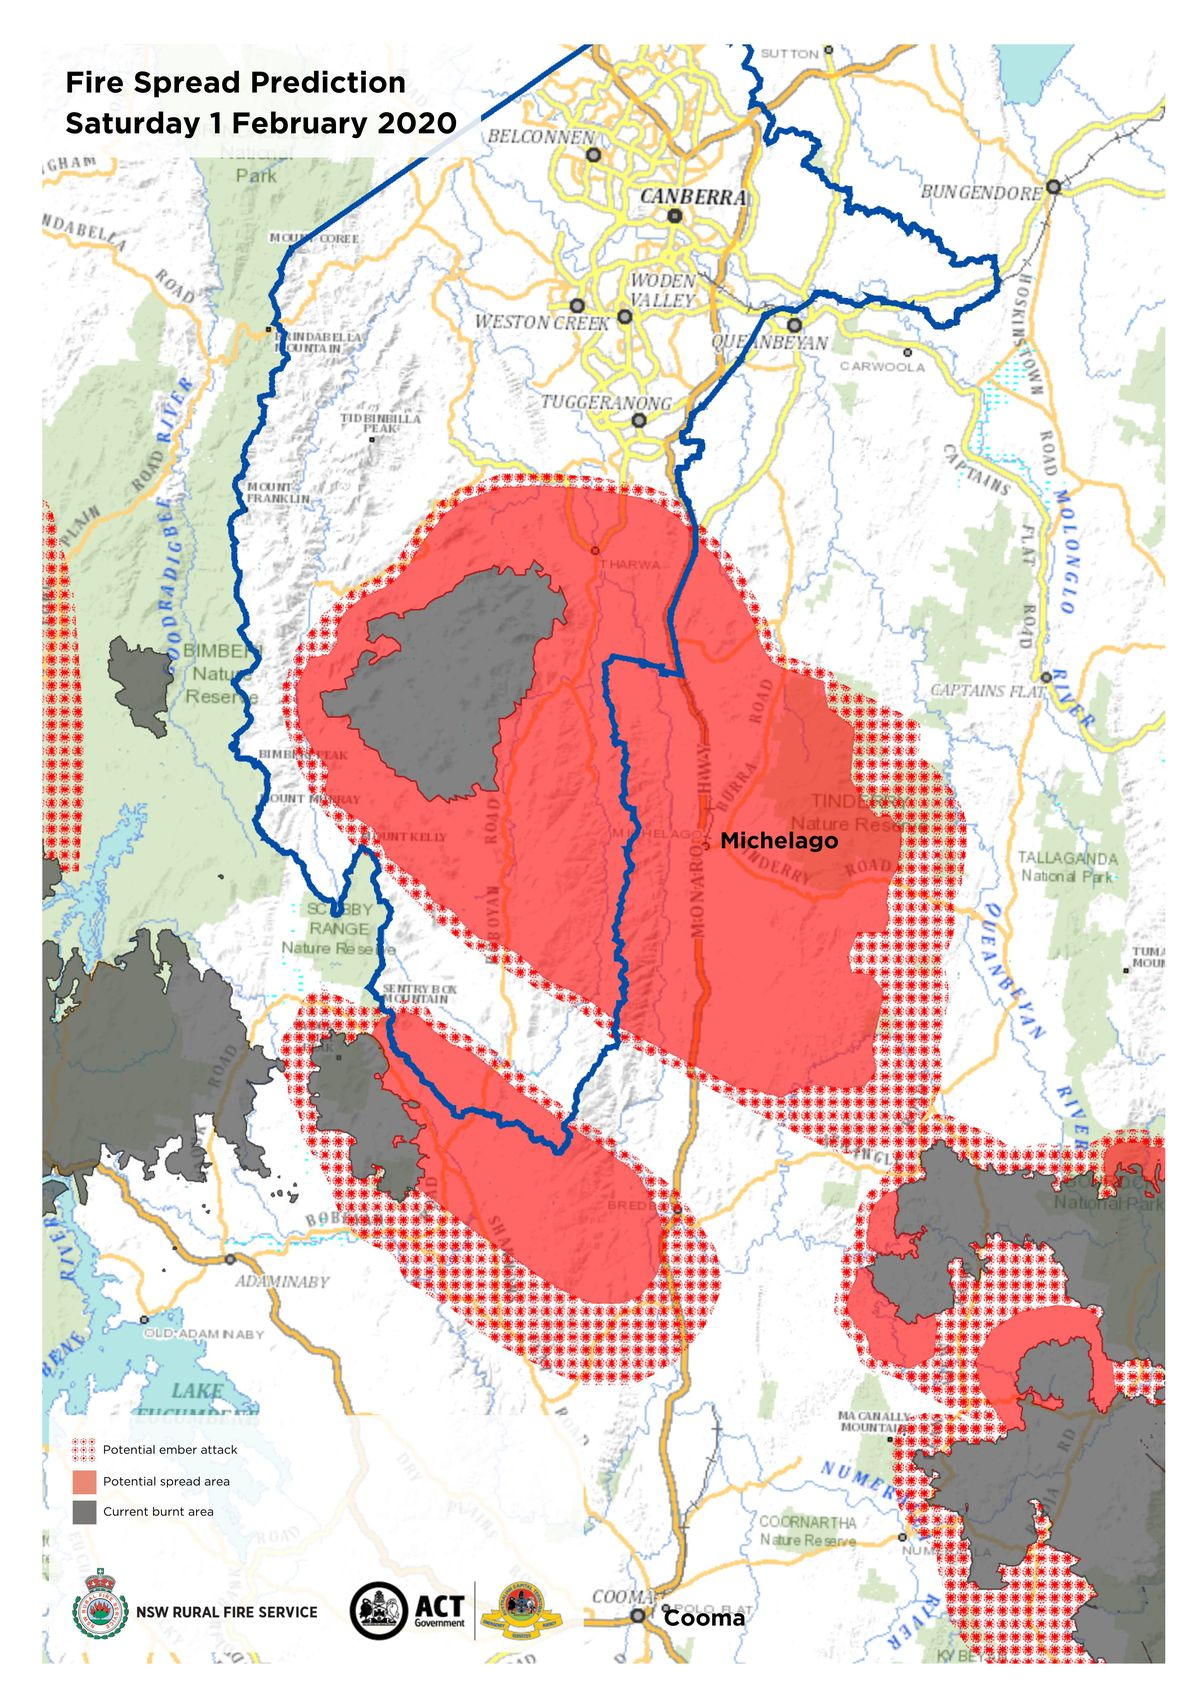 A map of the fire spread prediction for the Australian Capital Territory for February 1, 2020.